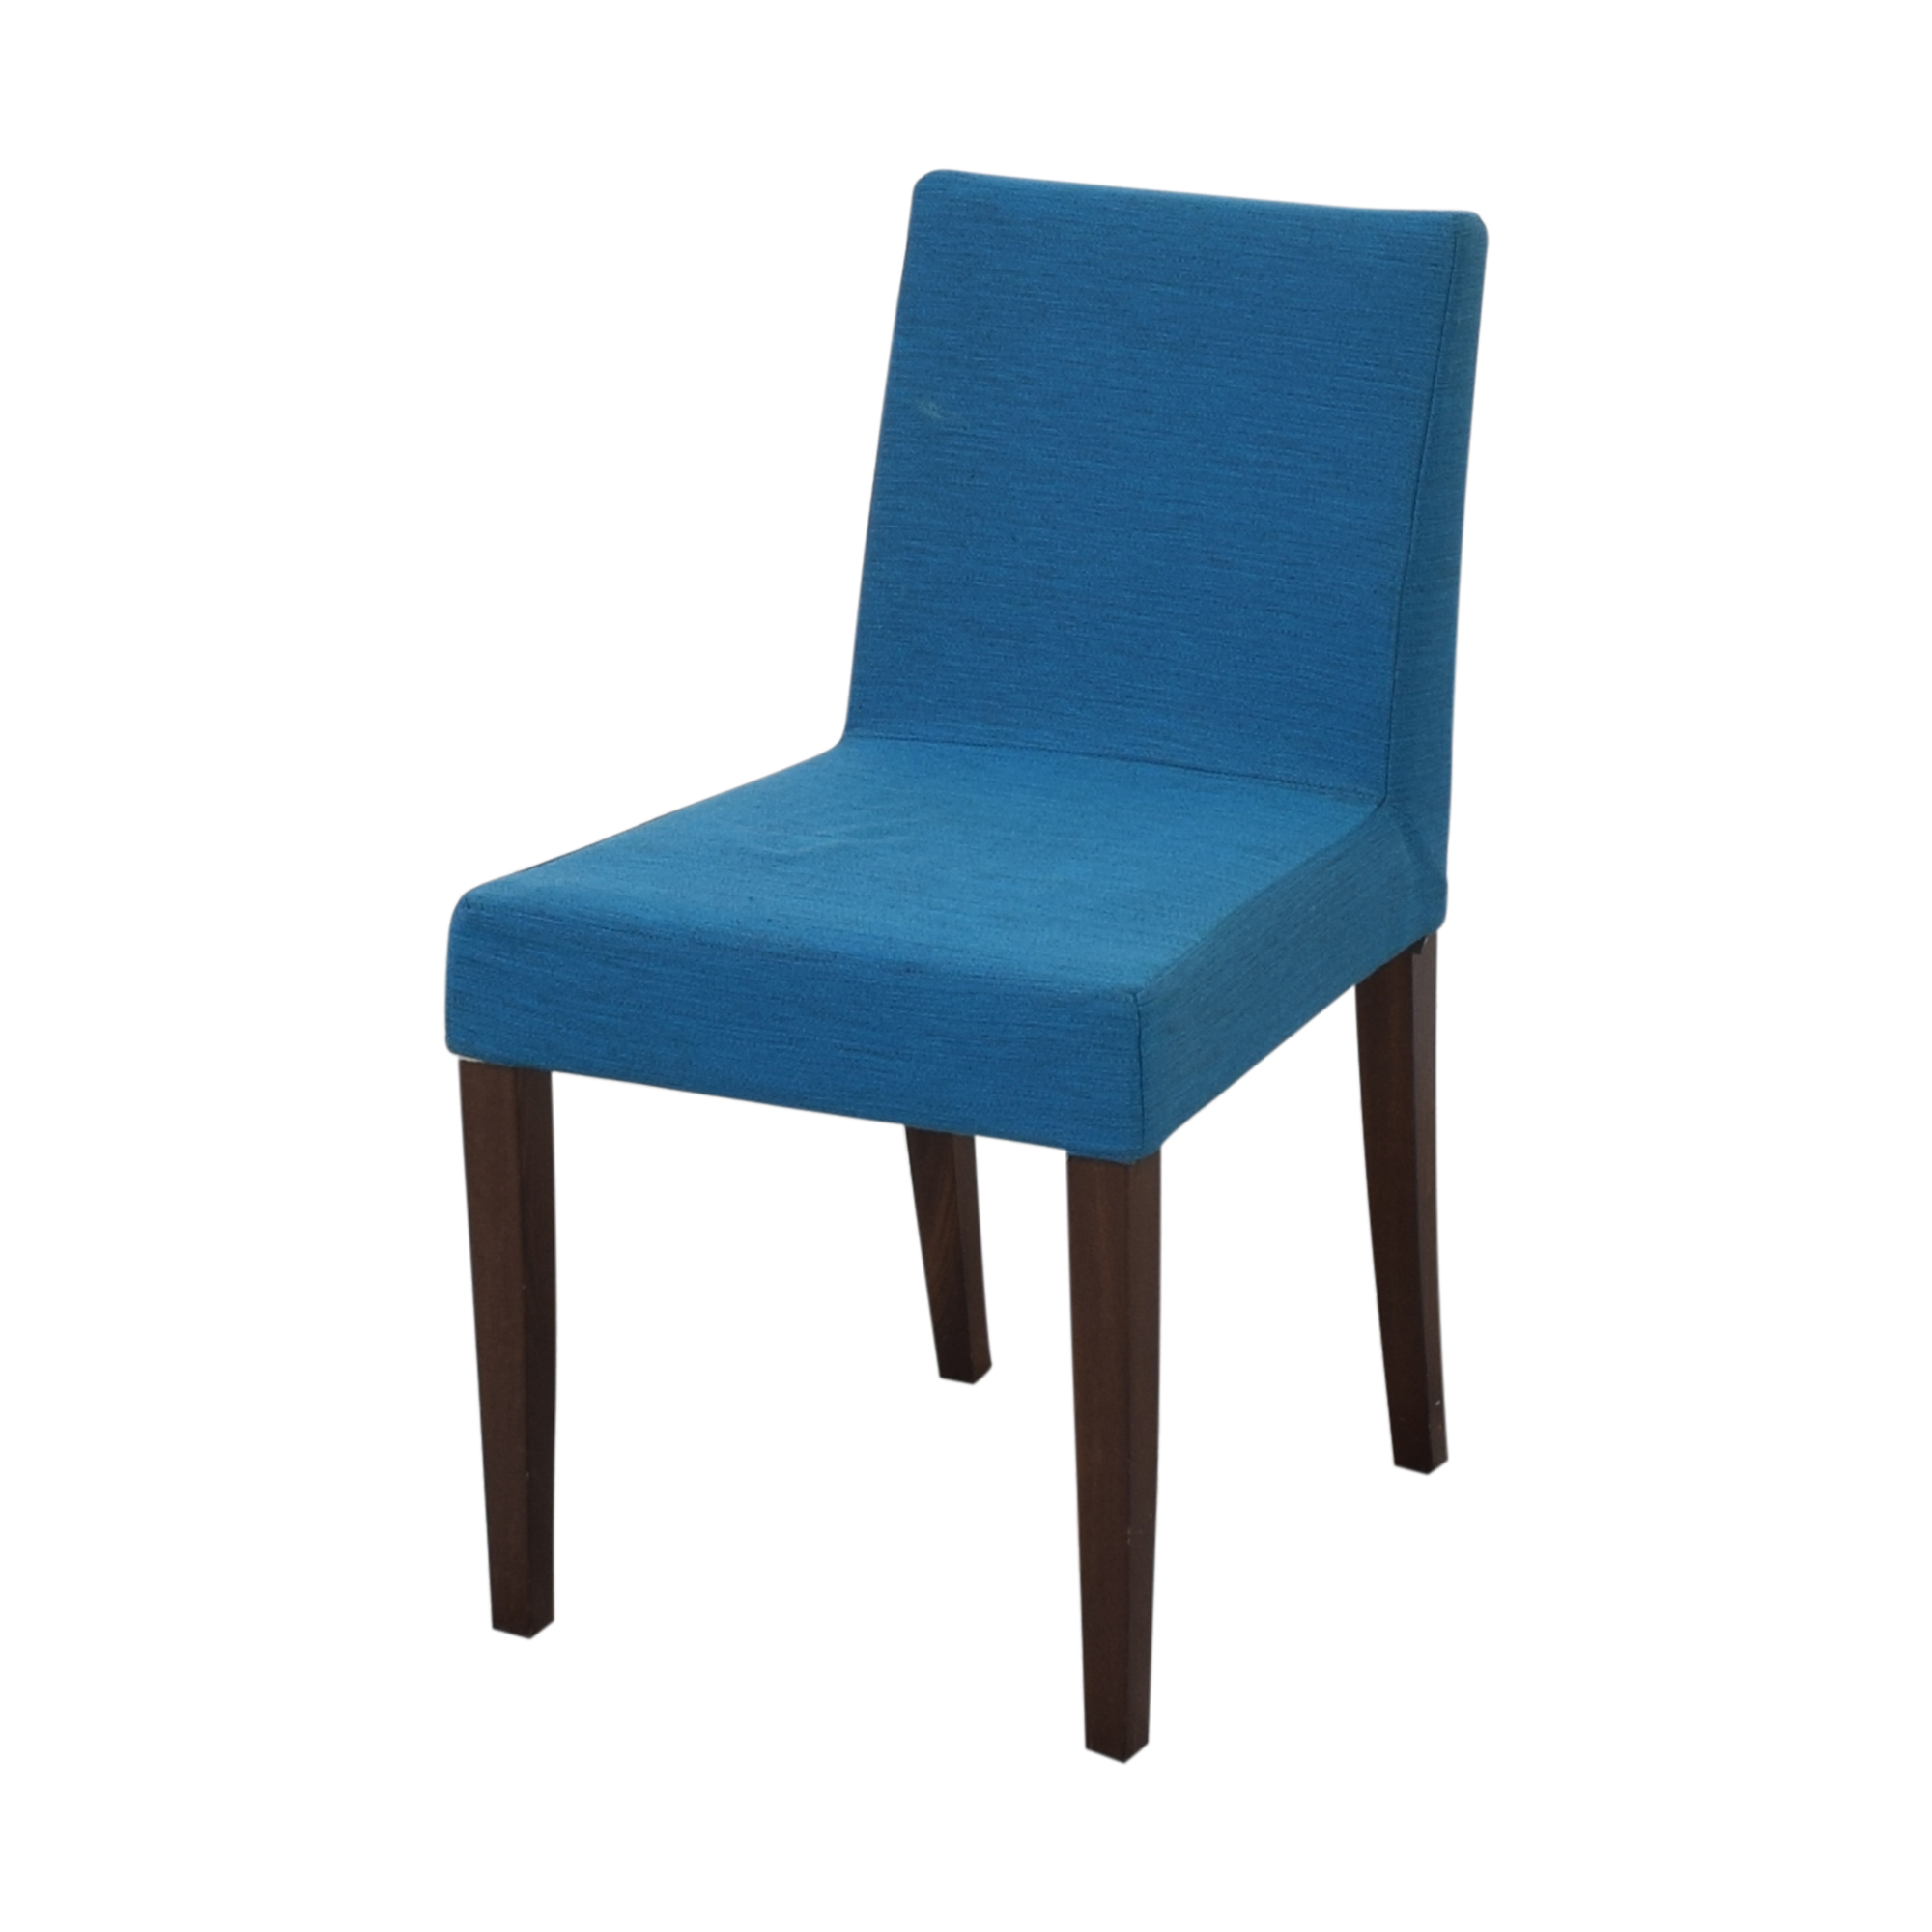 Ligne Roset Ligne Roset Didier Gomez French Line Dining Chairs blue and brown